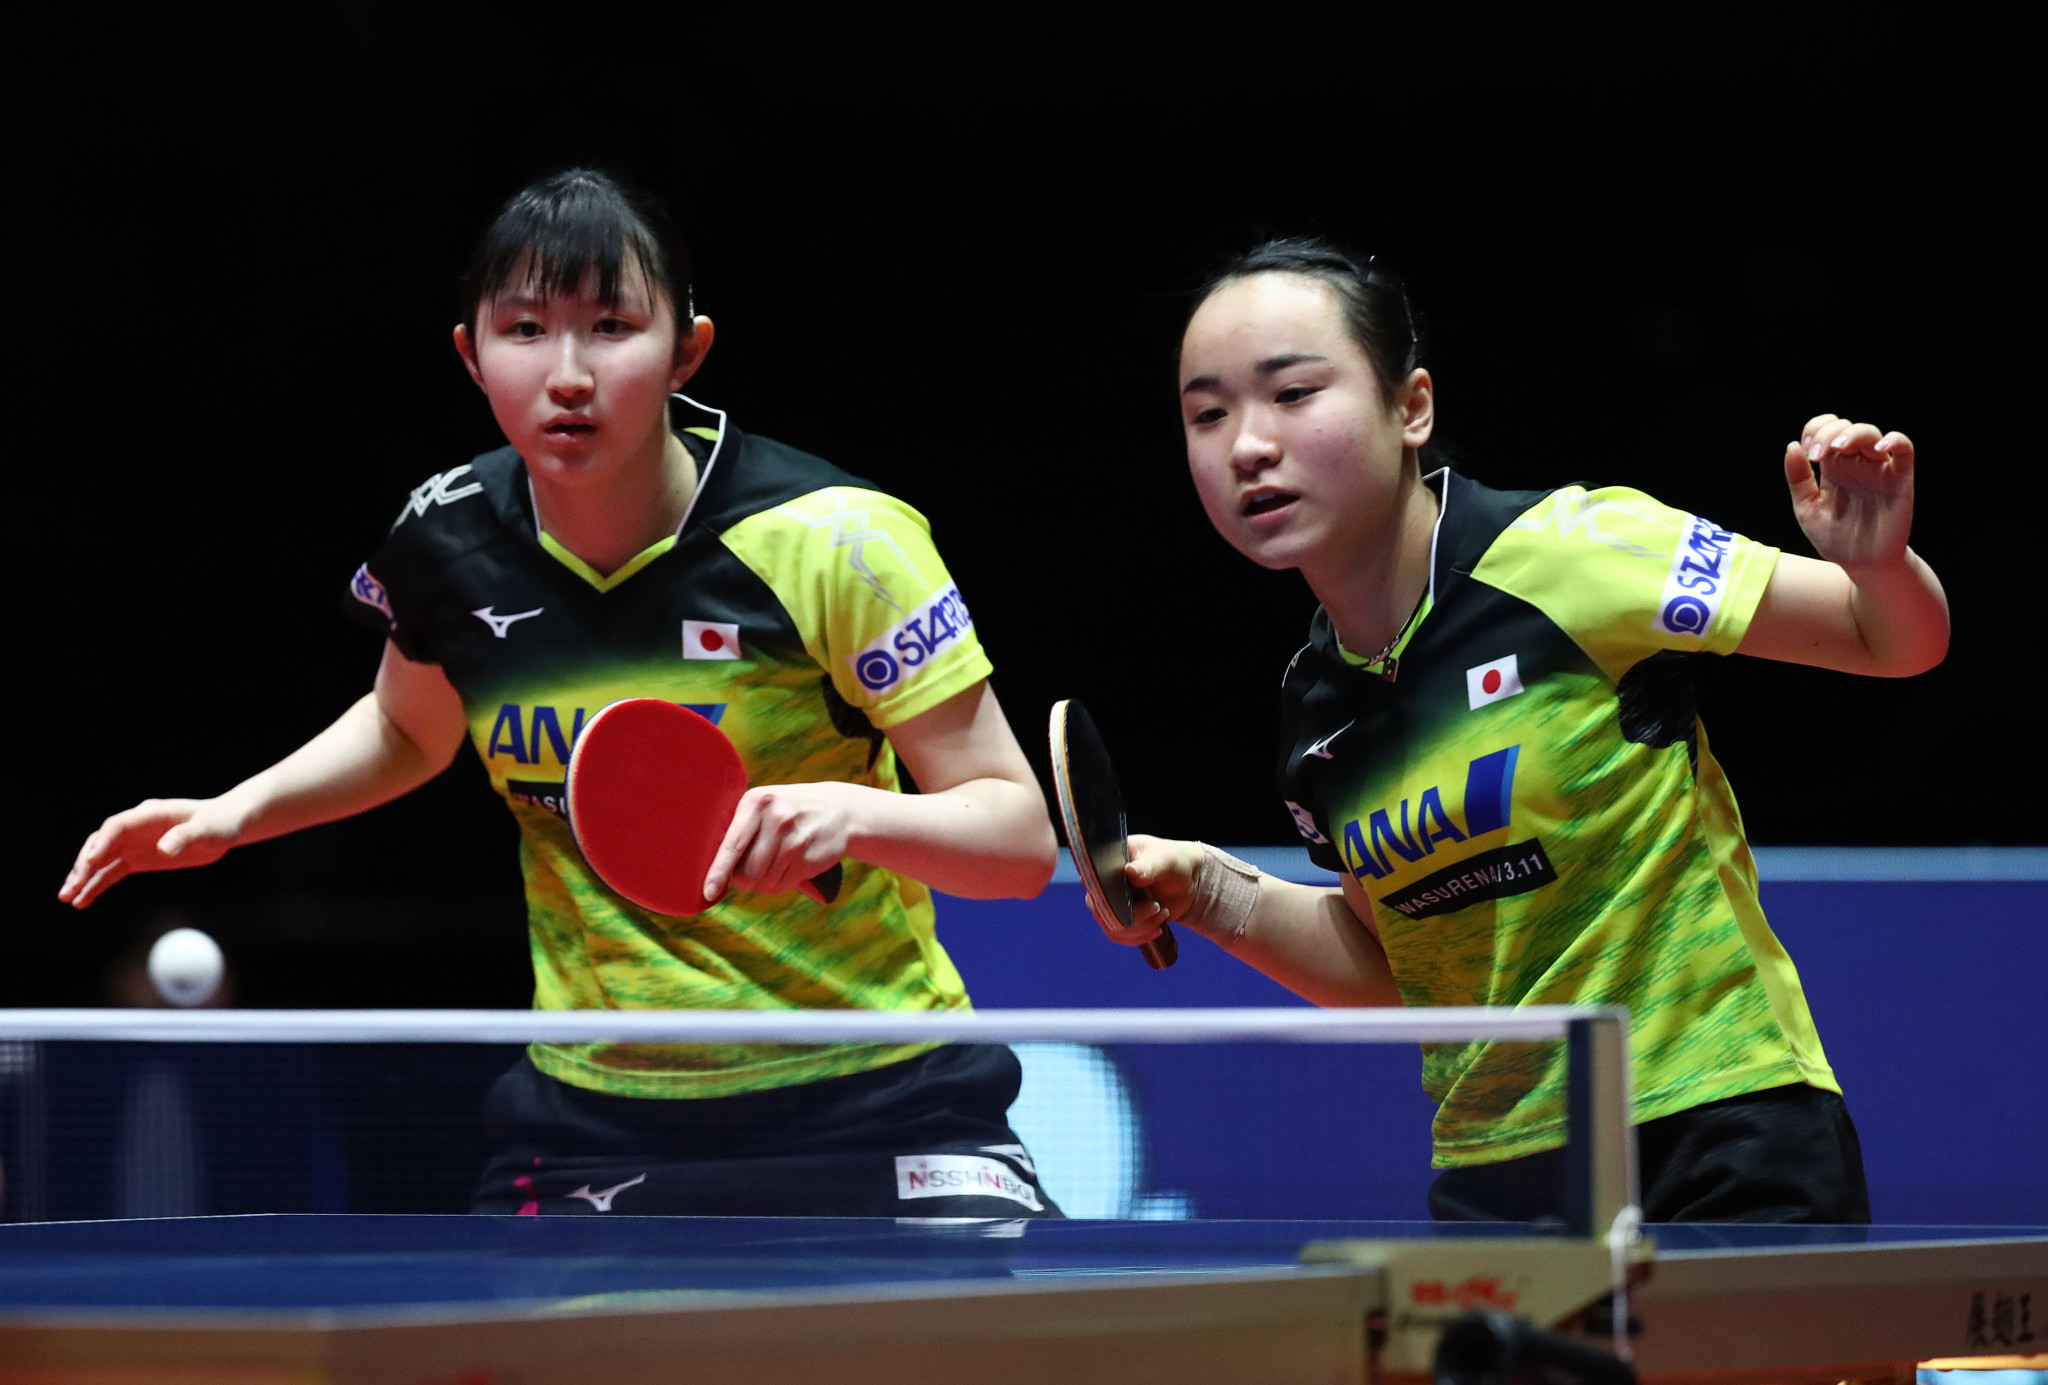 Confirmation of 2021 and 2022 World Table Tennis Championship hosts headlines ITTF meetings in Budapest